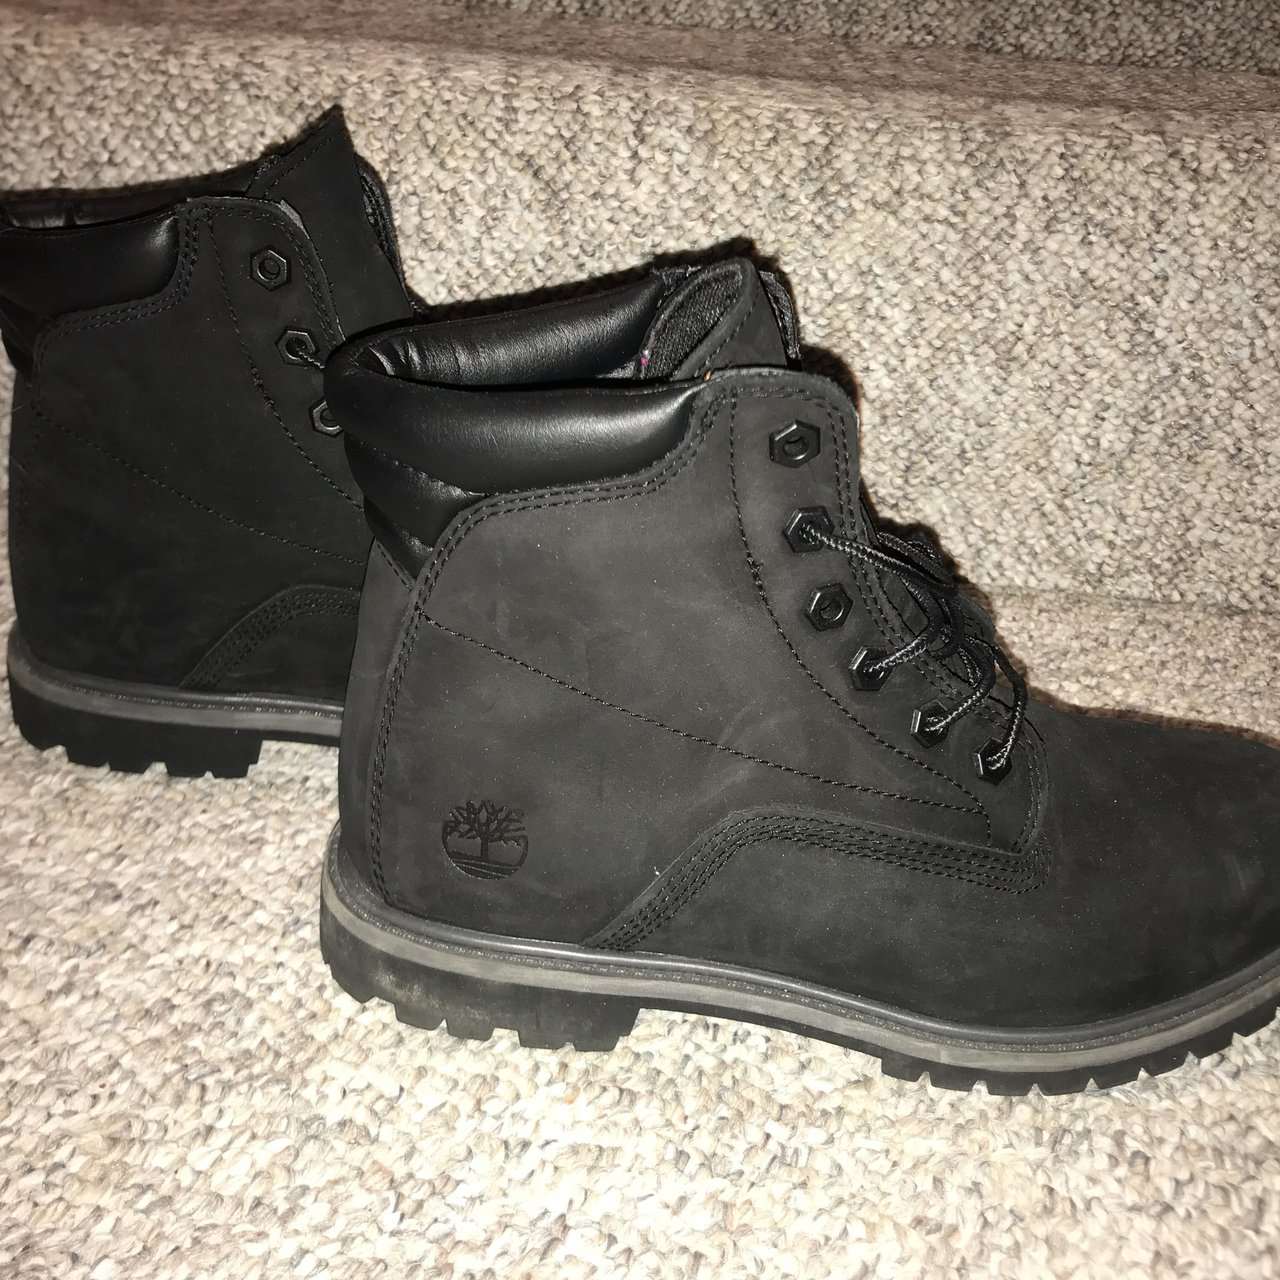 Black timberlands women size 10 but could also be for men 2 - Depop 7c04086e0fb3